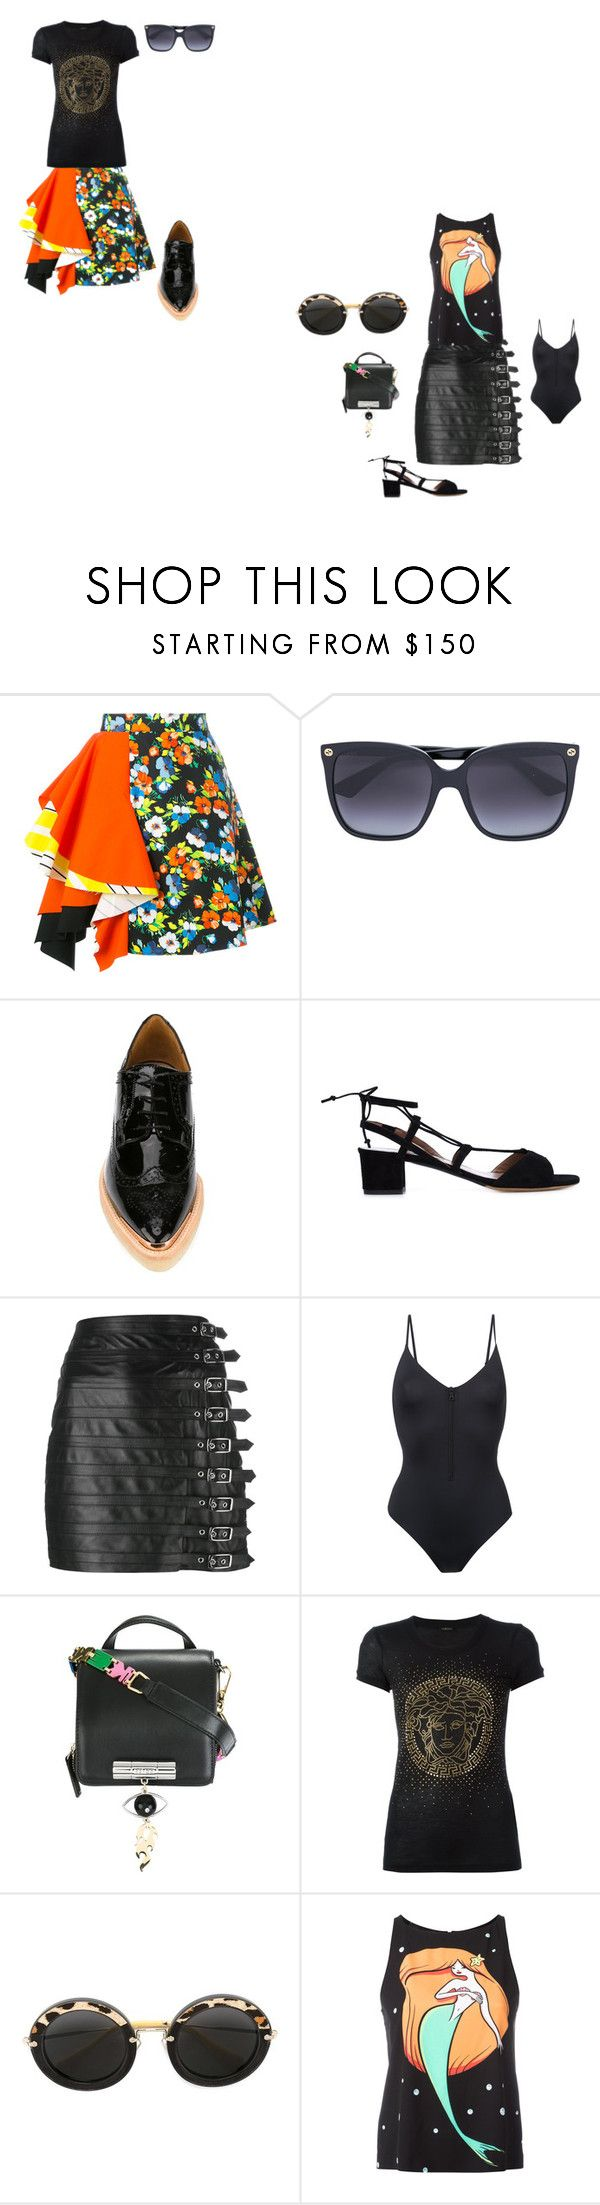 """ENJOY THURSDAY"" by ramakumari ❤ liked on Polyvore featuring MSGM, Gucci, Avelon, Tabitha Simmons, Manokhi, ONIA, Kenzo, Versace, Miu Miu and Boutique Moschino"